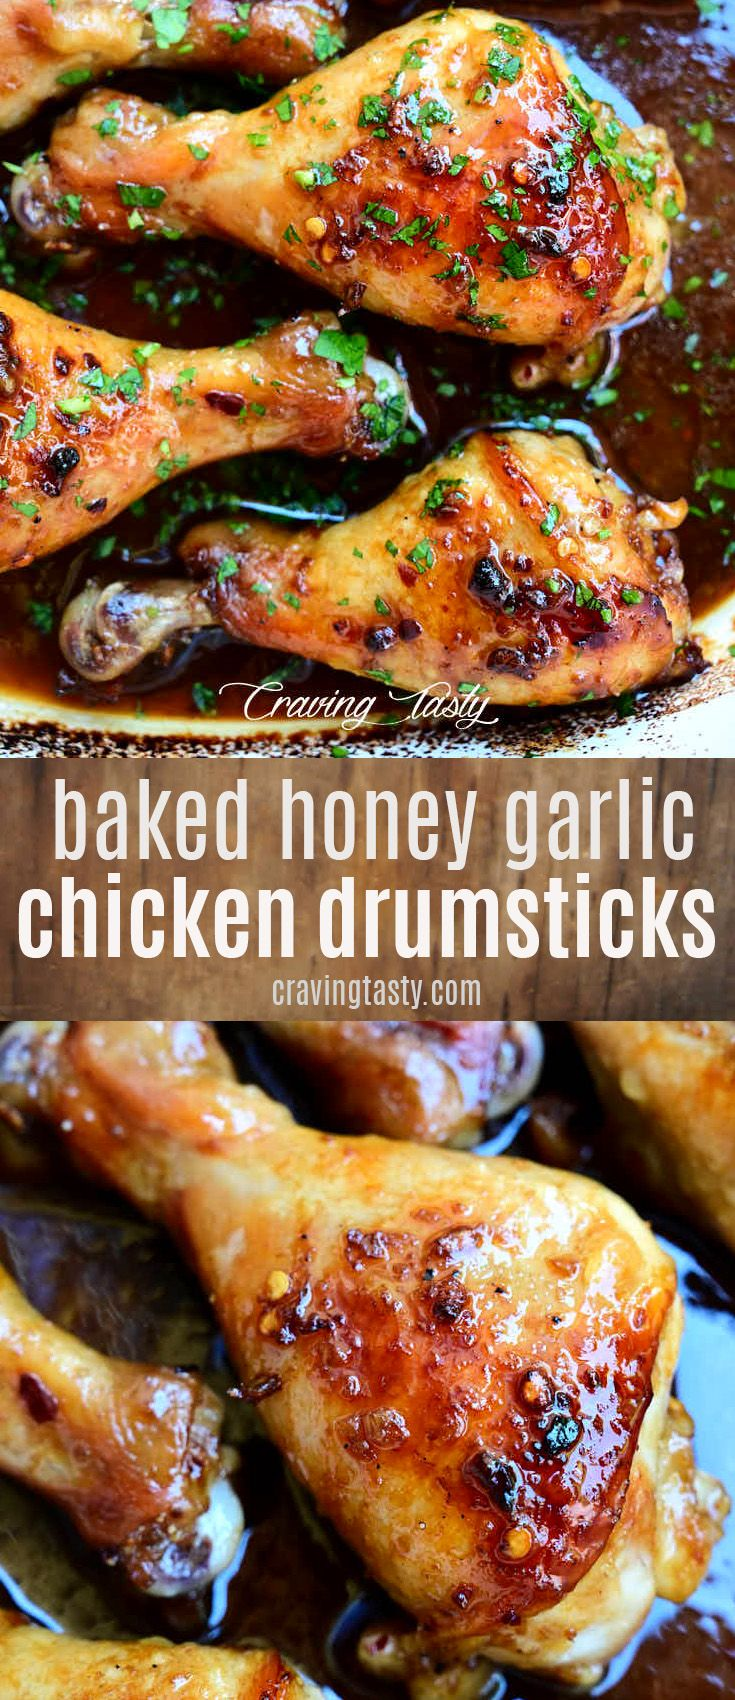 Oven baked chicken drumsticks that are so good that you will be running for seconds. Best oven baked chicken leg recipe. Super easy to make. | cravingtasty.com #bakeddrumsticks #bakedchicken